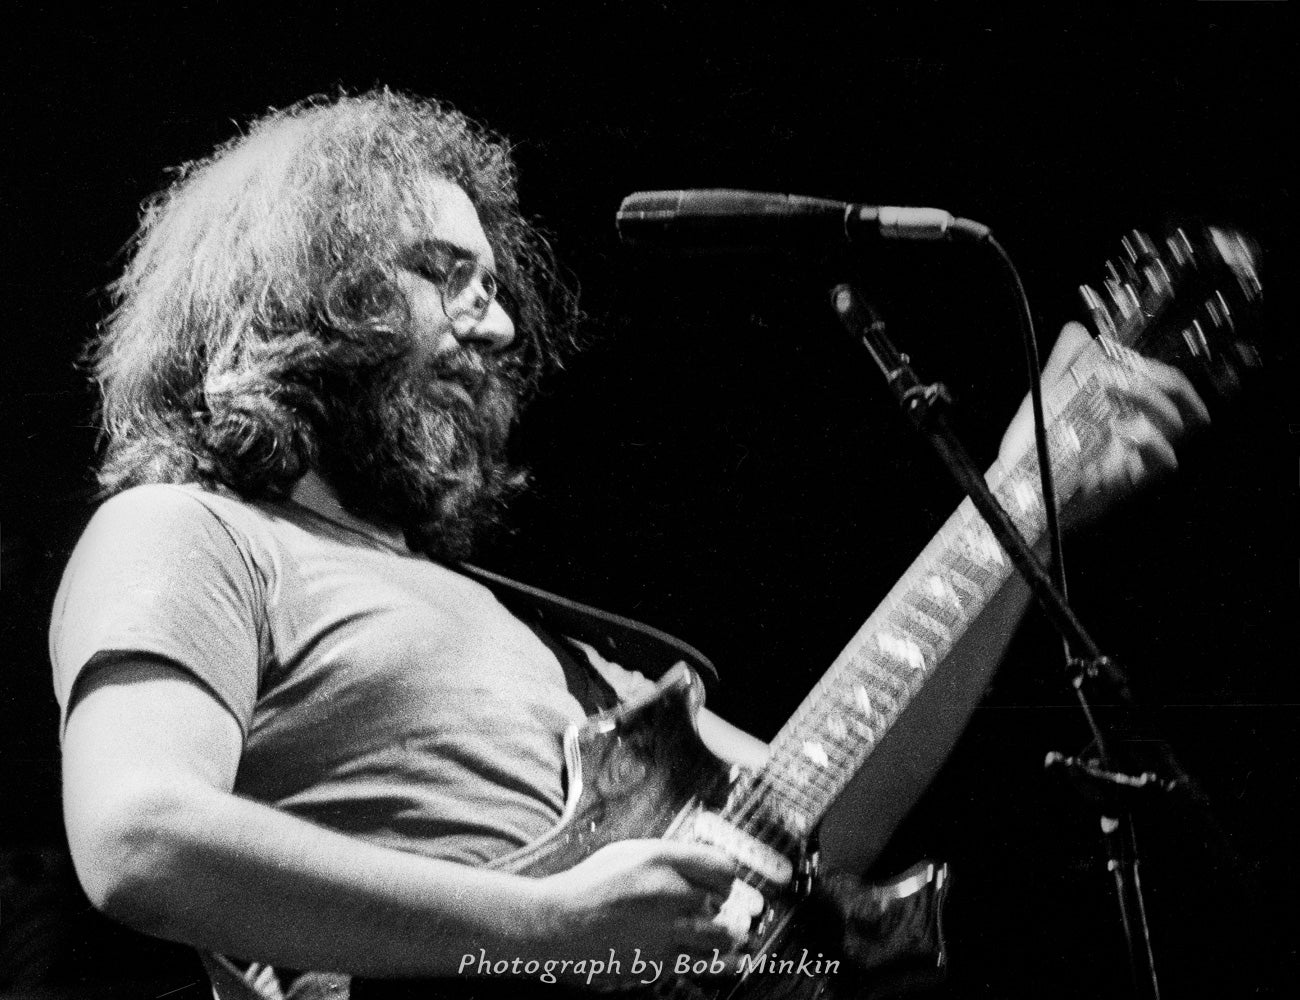 Jerry Garcia - Tower Theater, Upper Darby, PA 2.23.80 - Bob Minkin Photography